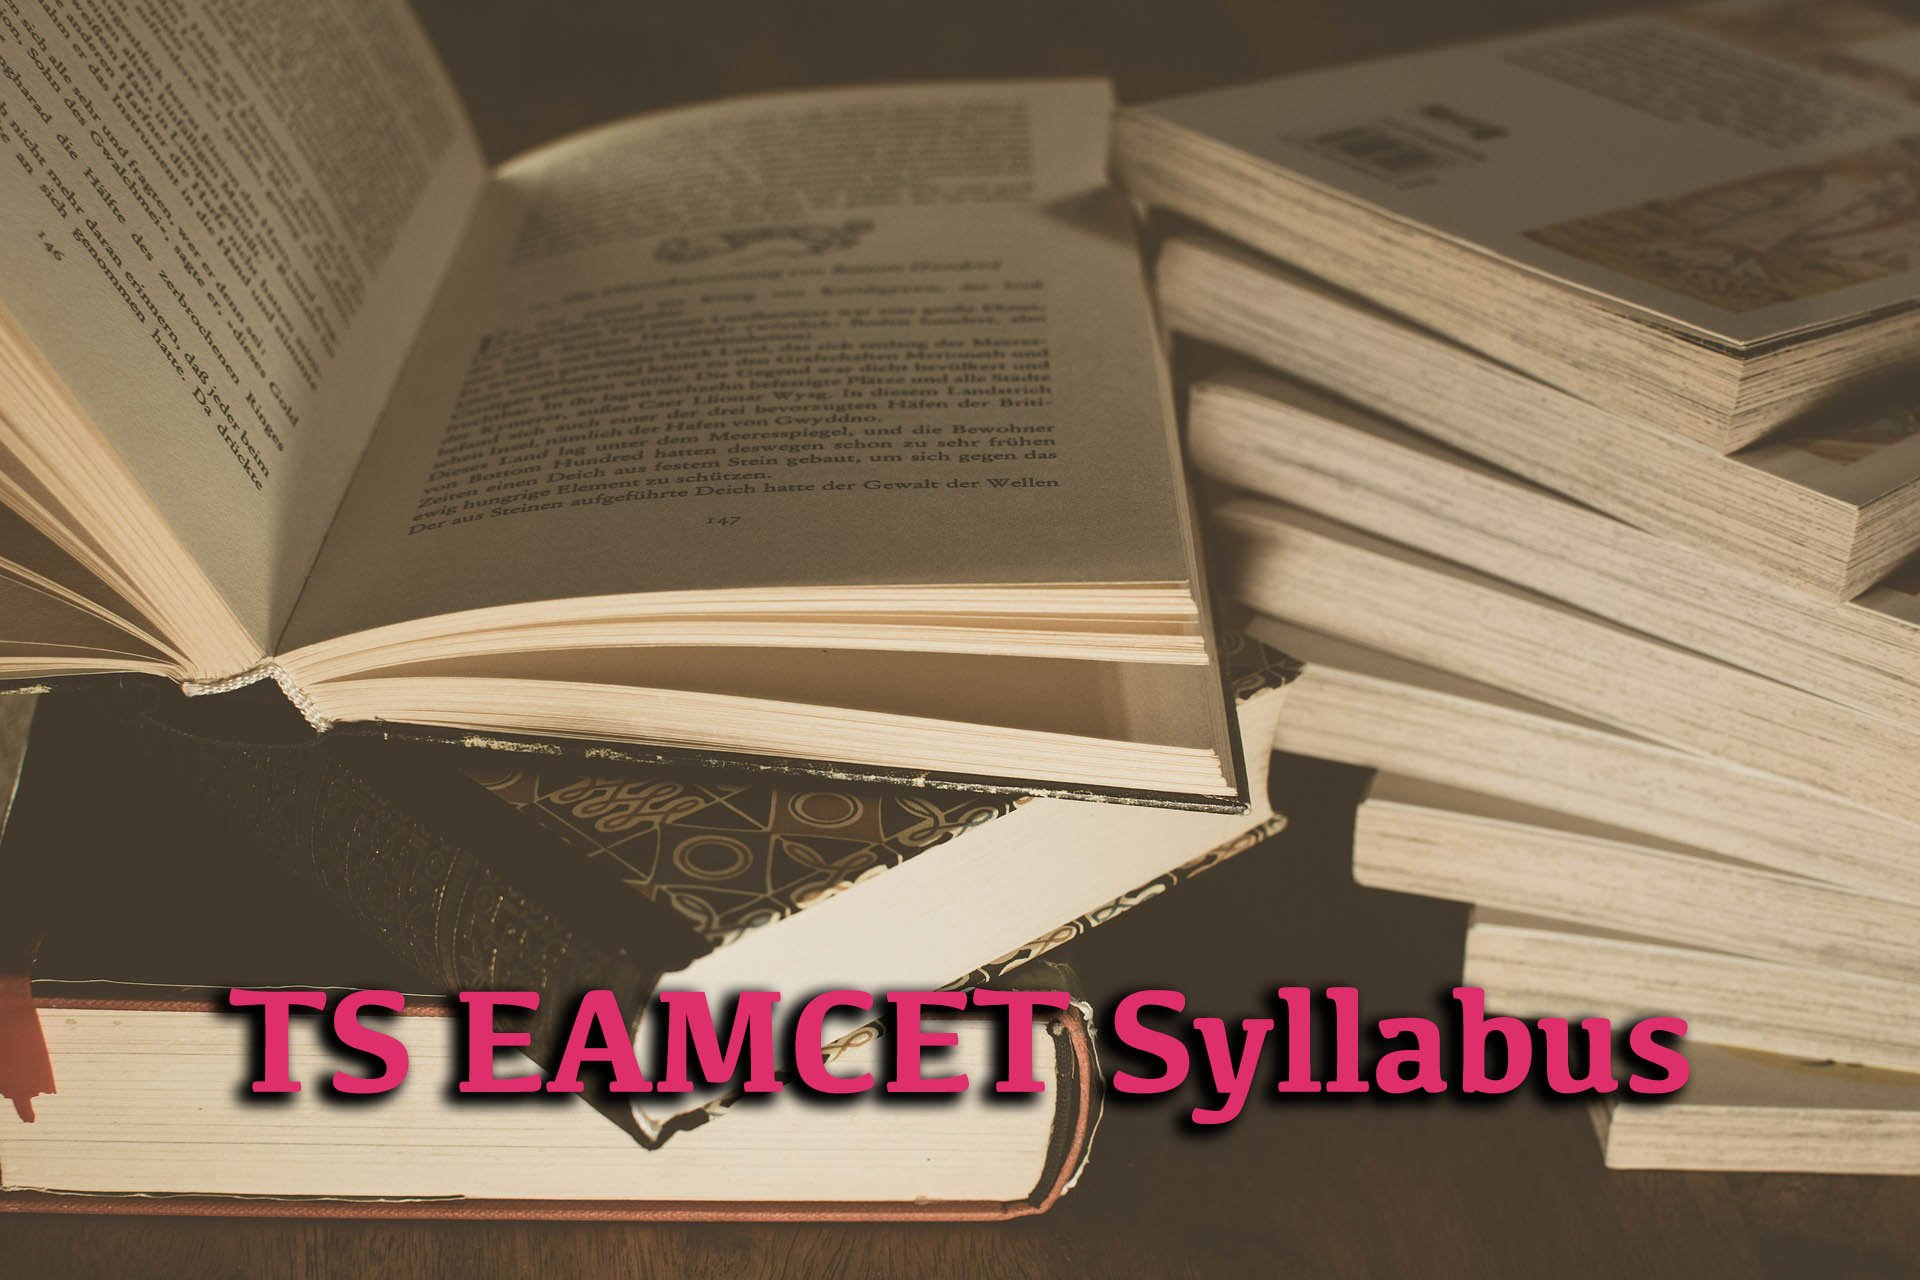 TS EAMCET 2020 - Application form, Exam date,Fee payment, Eligibility, Syllabus And Pattern